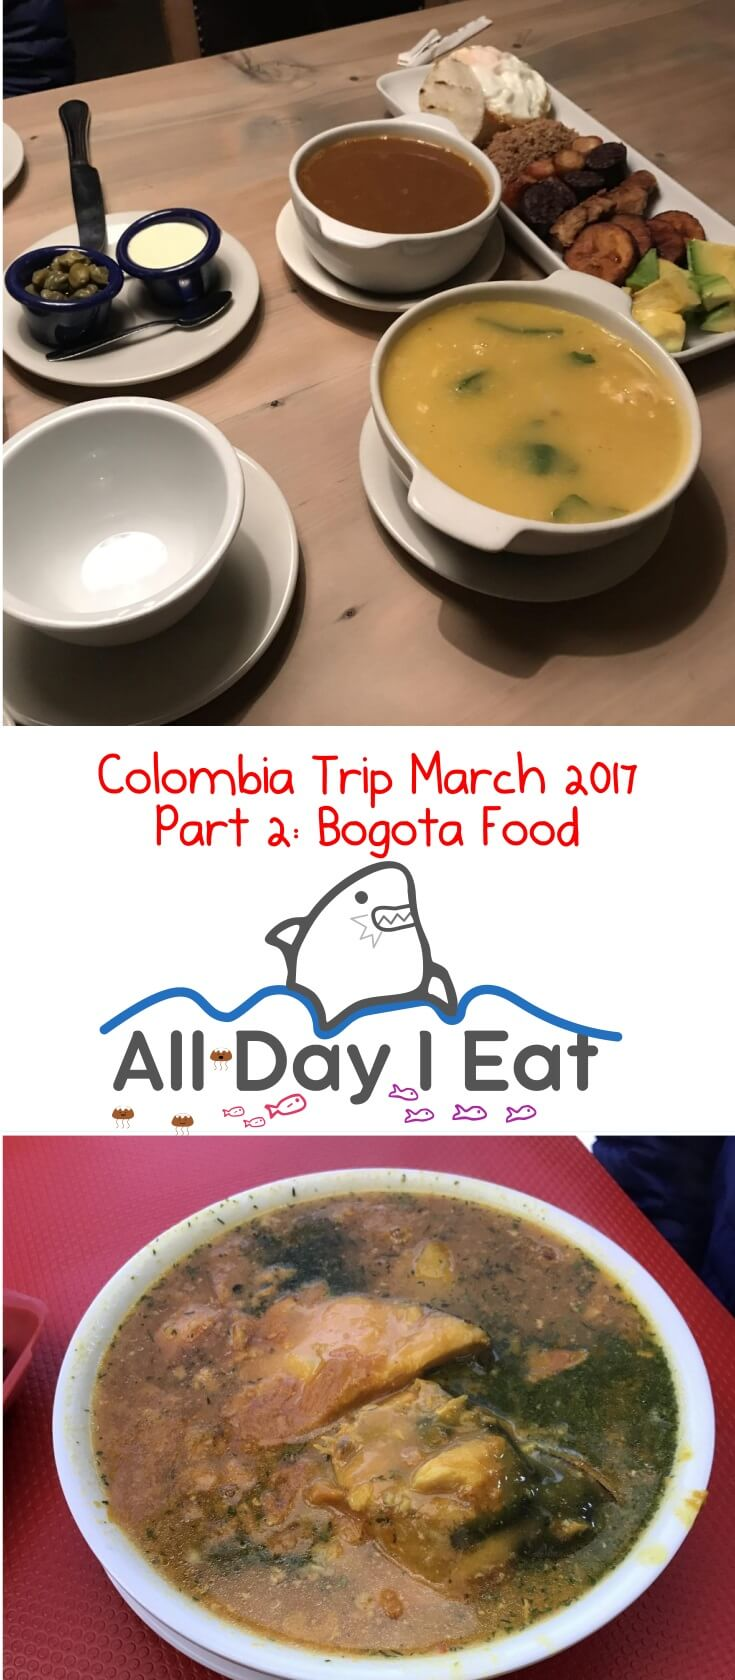 Colombia Trip March 2017 Part 2: Bogota Food. The culinary scene in Bogota is quite extensive with all kinds of delicious food on offer! | www.alldayieat.com`